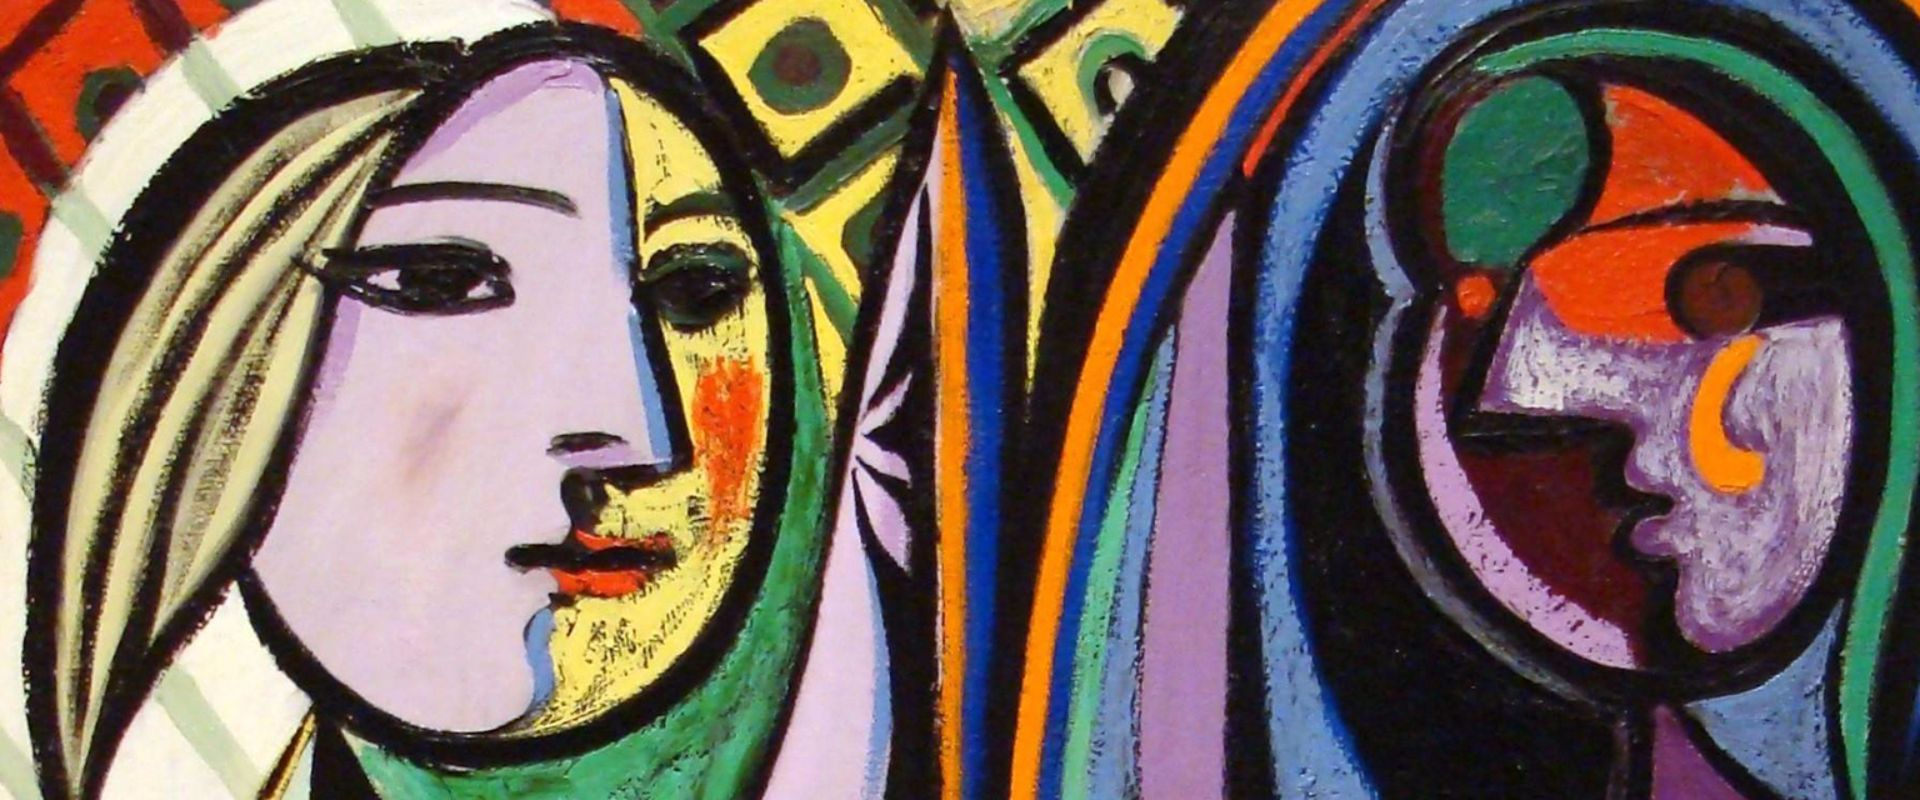 Pablo Picasso Paintings Buy Posters Frames Canvas